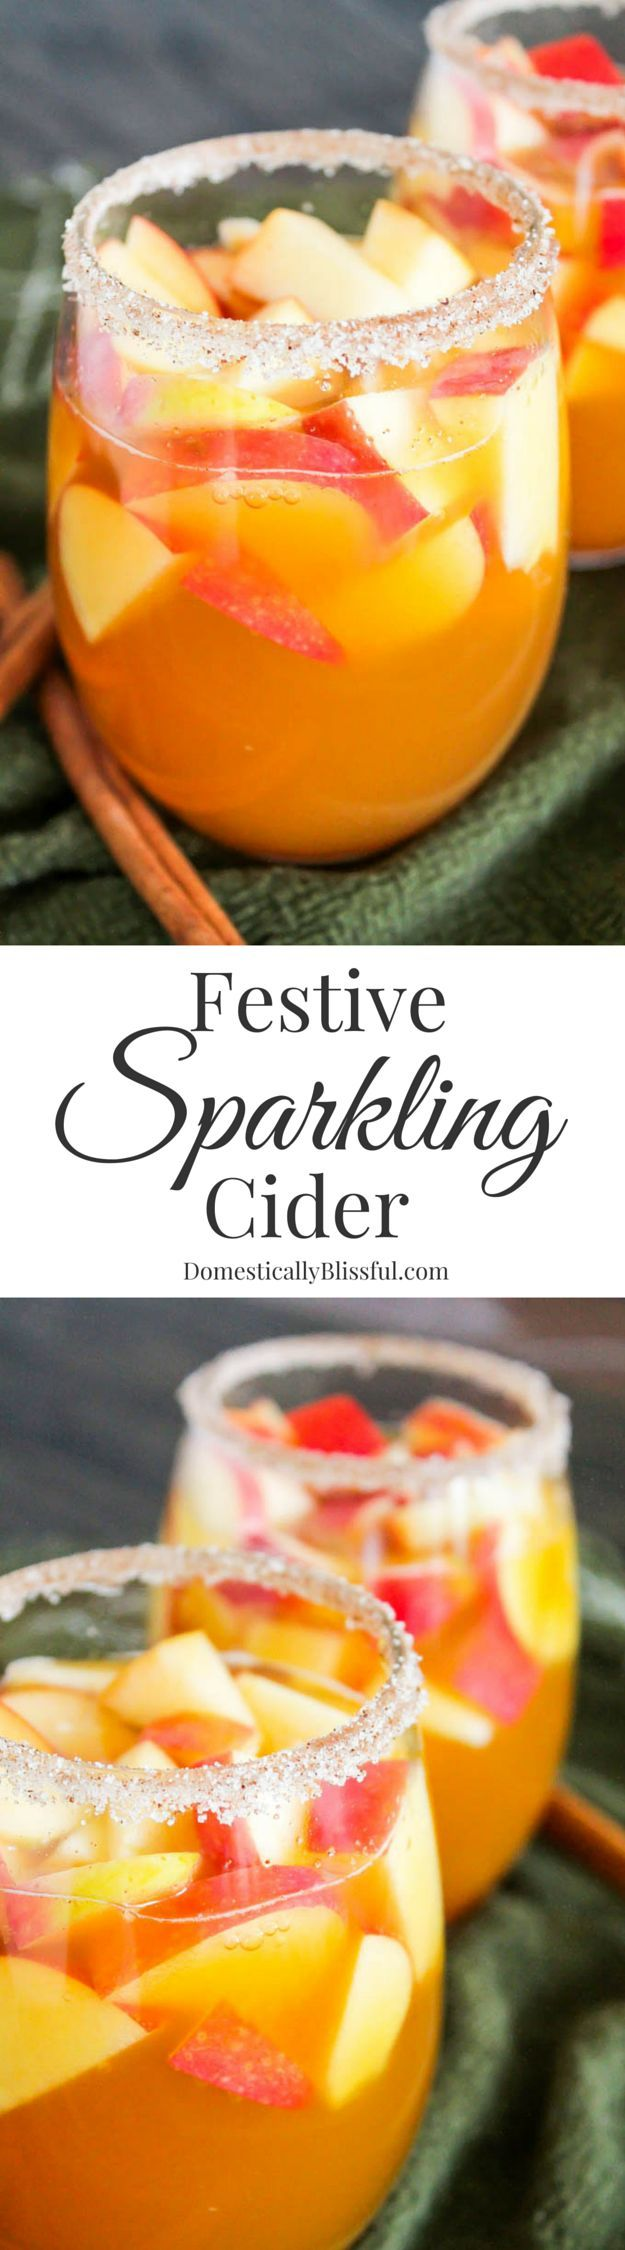 Festive Sparkling Cider is filled with the crisp flavors of fall & sparkling chill of winter making it the perfect non-alcoholic beverage for the holidays!